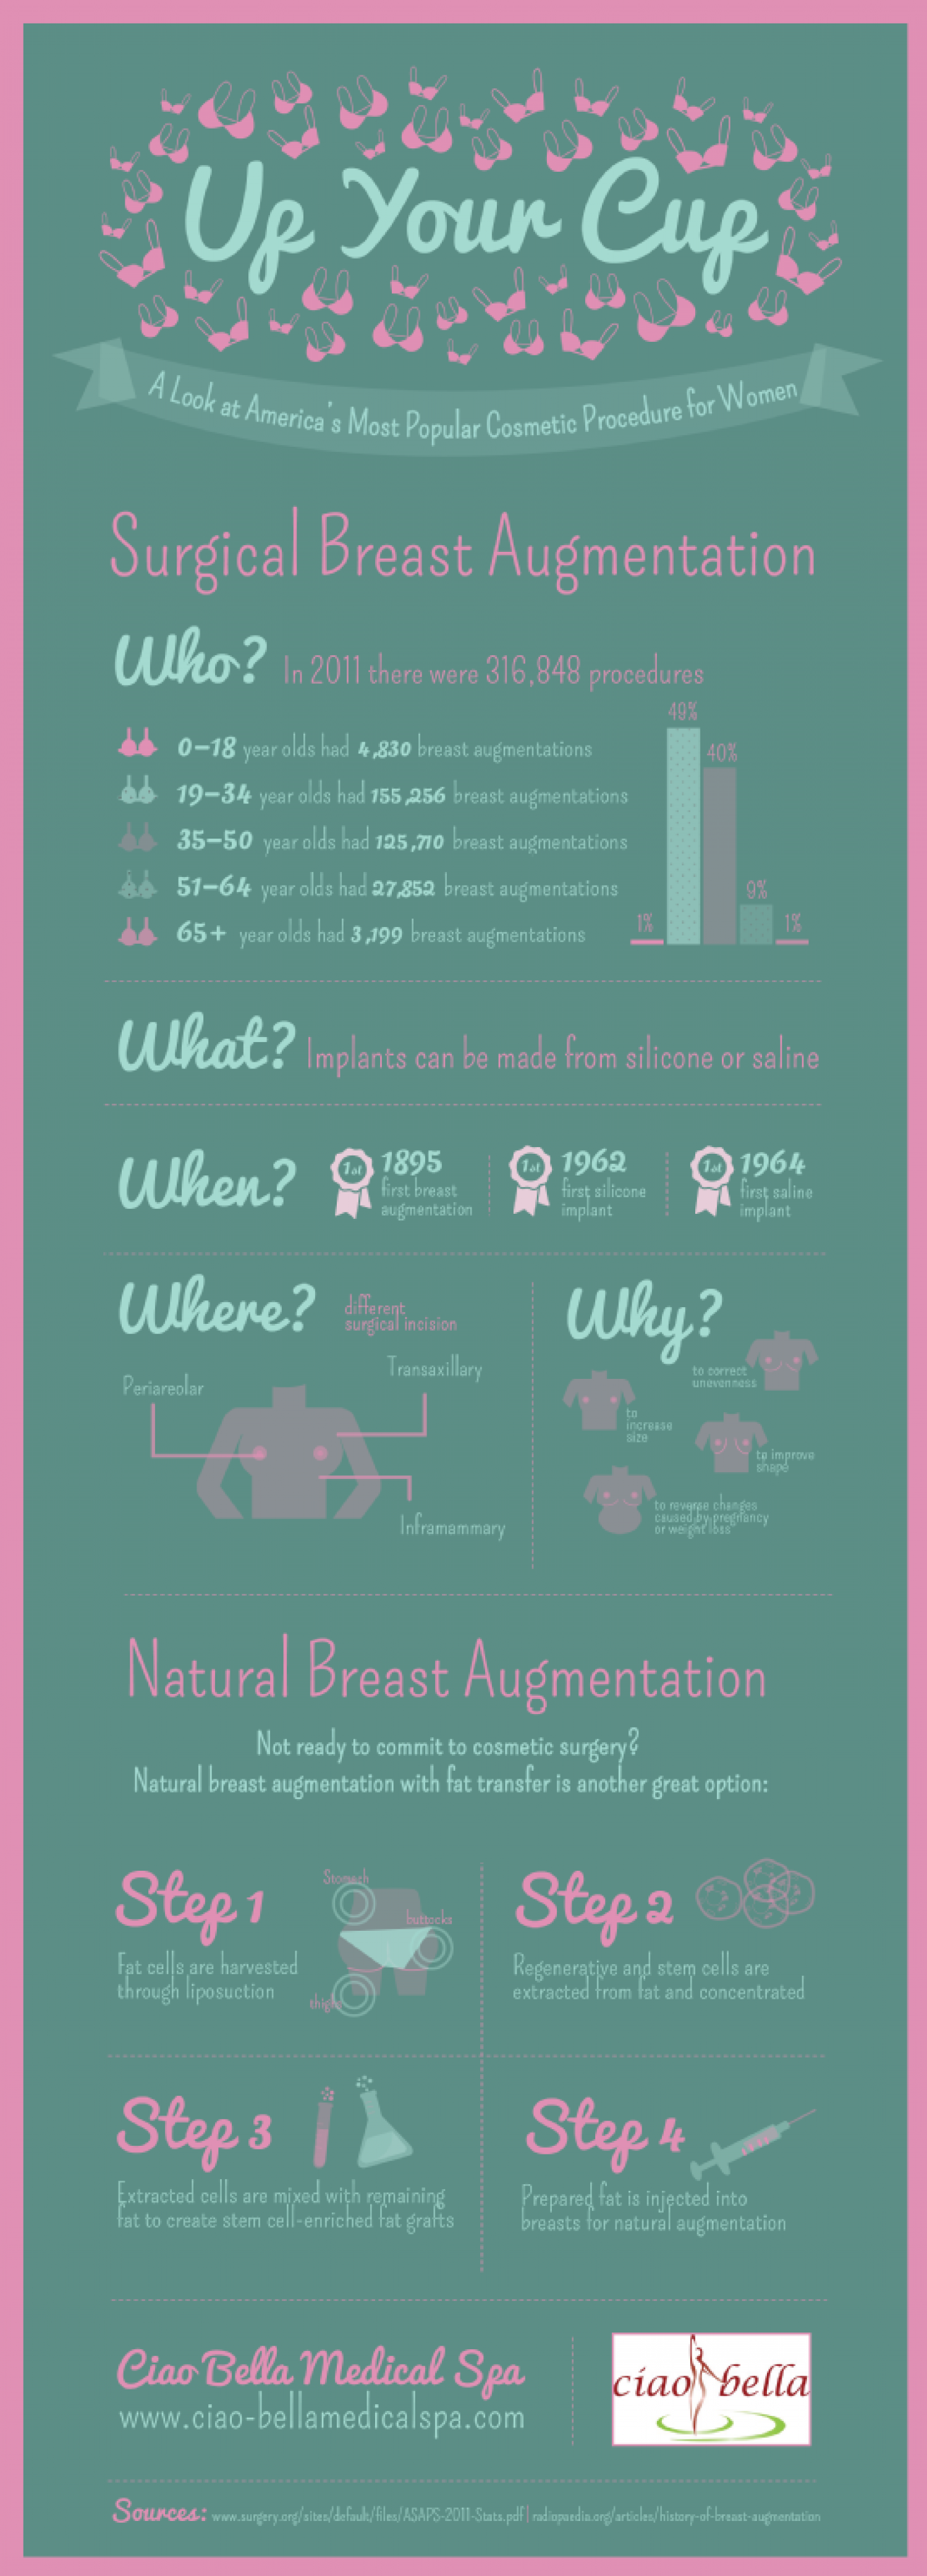 Up Your Cup: A Look at America's Most Popular Cosmetic Procedure for Women Infographic